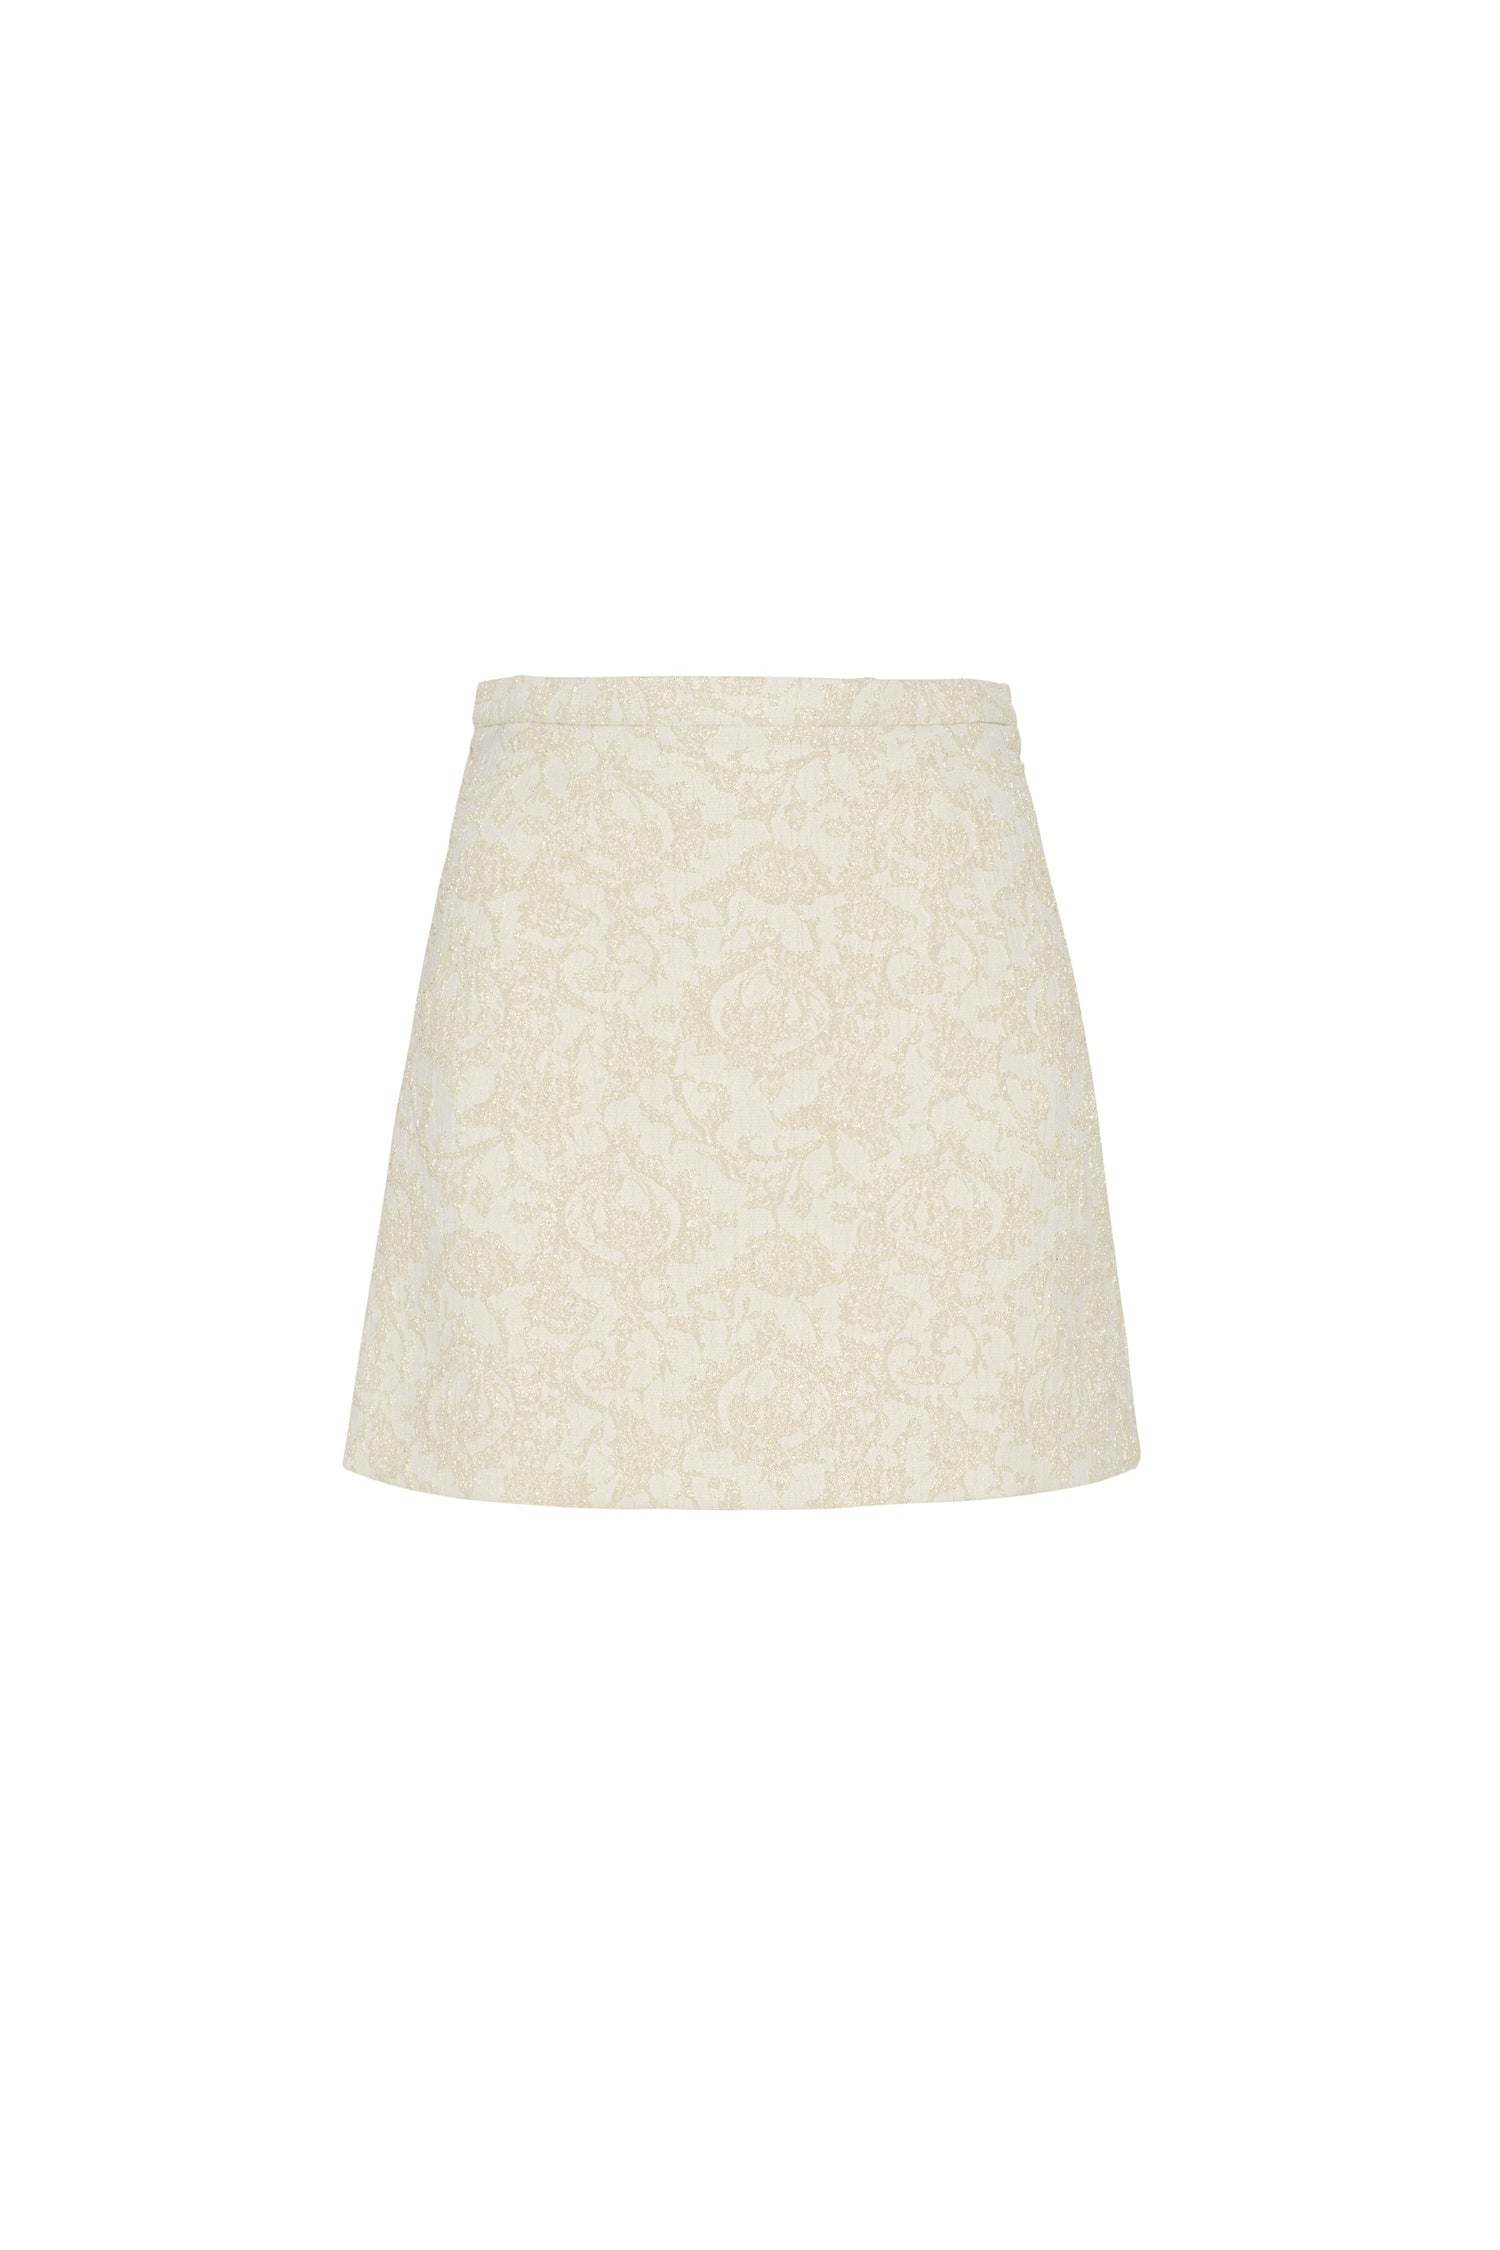 BABY MINI SKIRT IN IVORY BROCADE